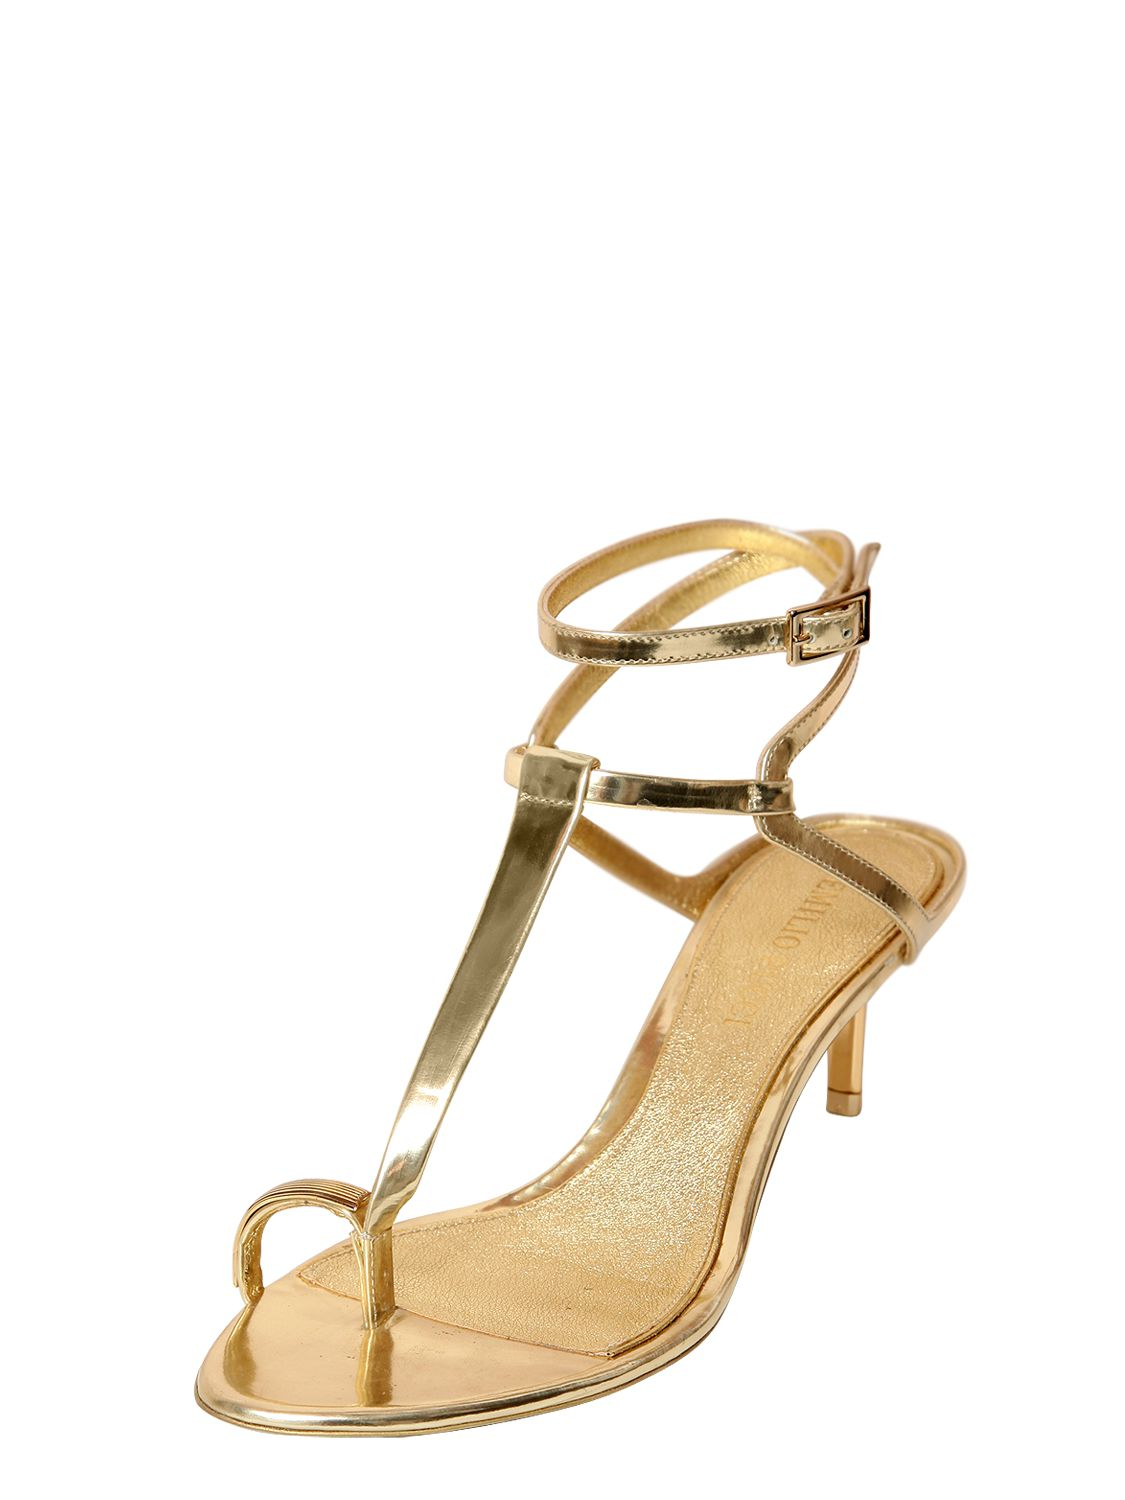 Lyst Emilio Pucci 55mm Mirrored Leather Sandals In Metallic